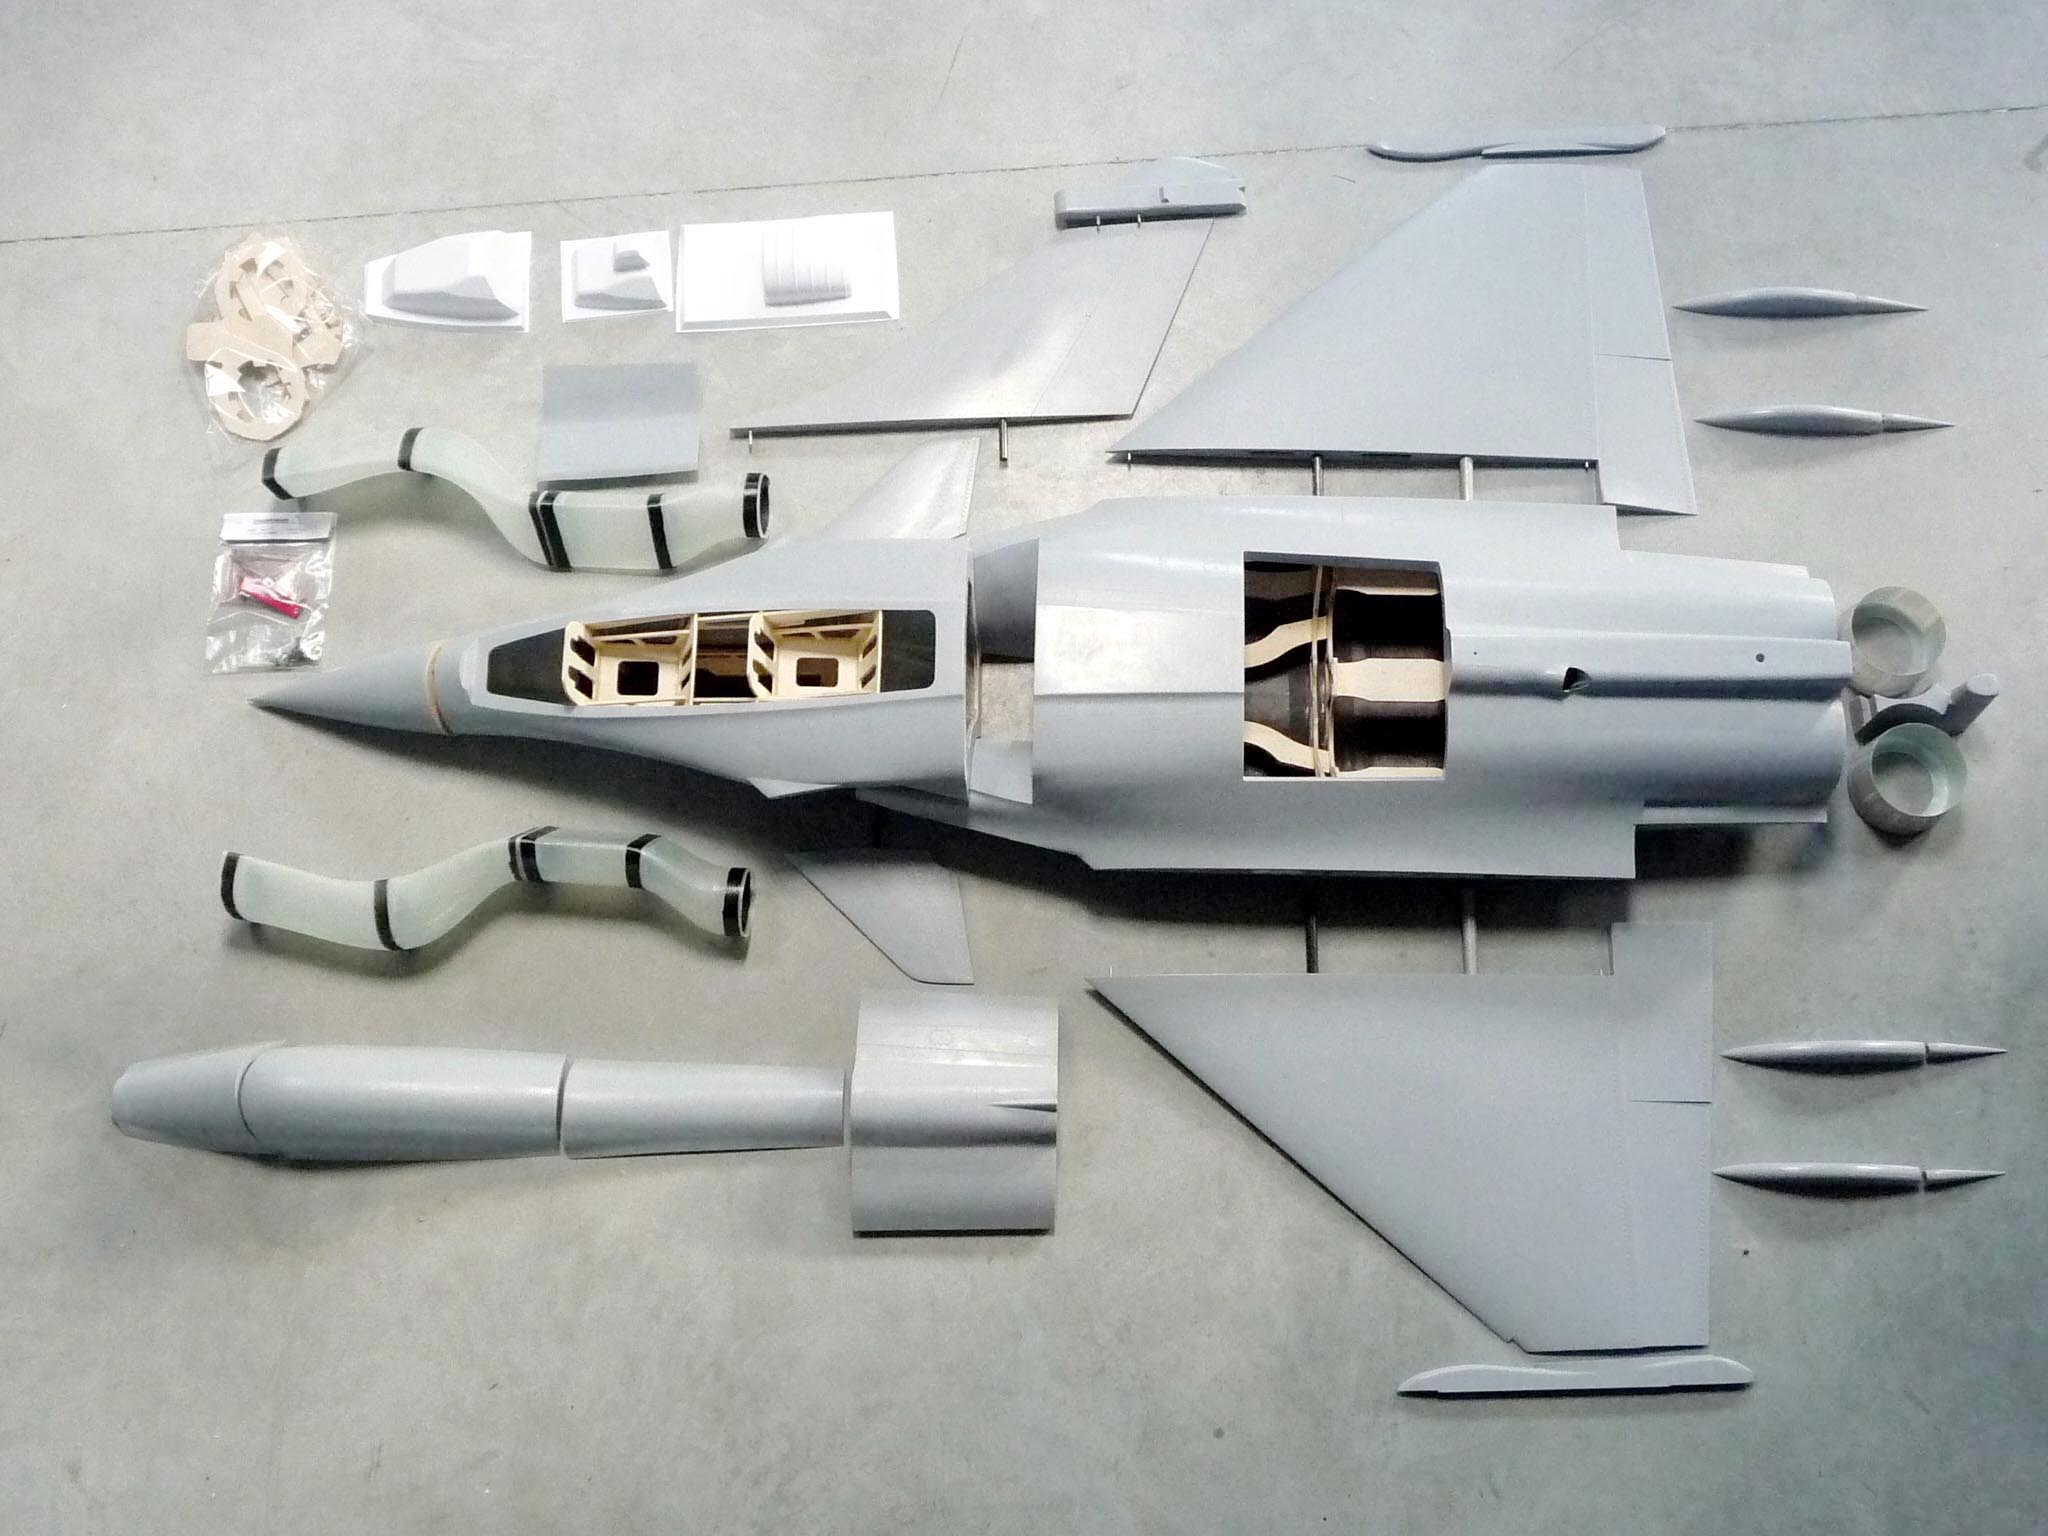 RC Jet Model RAFALE 1/7 scale - Kit designed by Eric Rantet